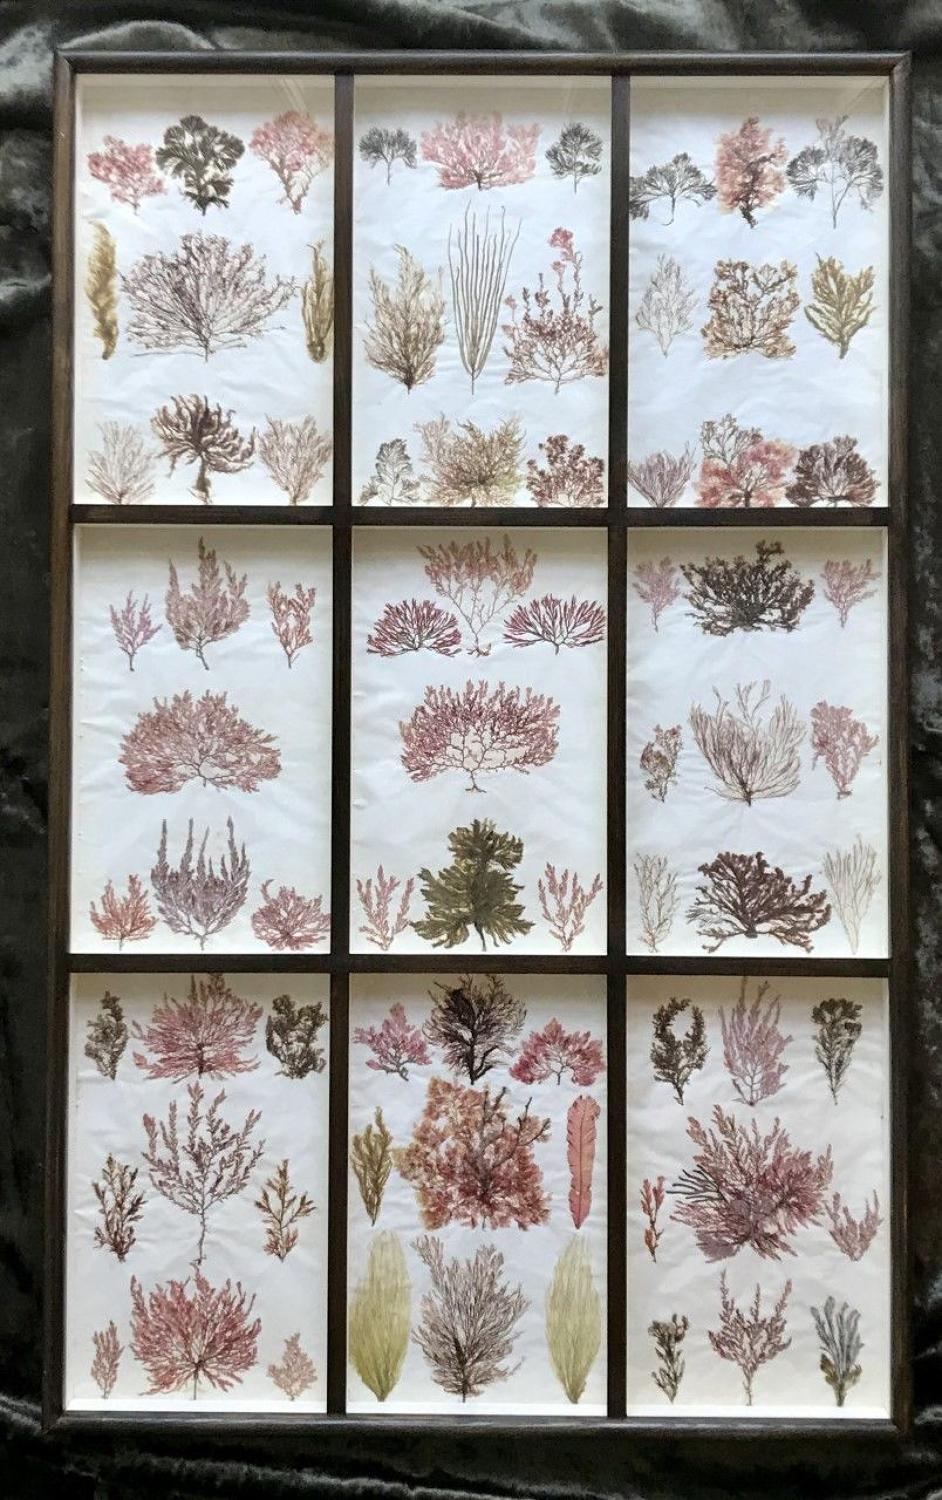 19th century British Seaweed Specimens